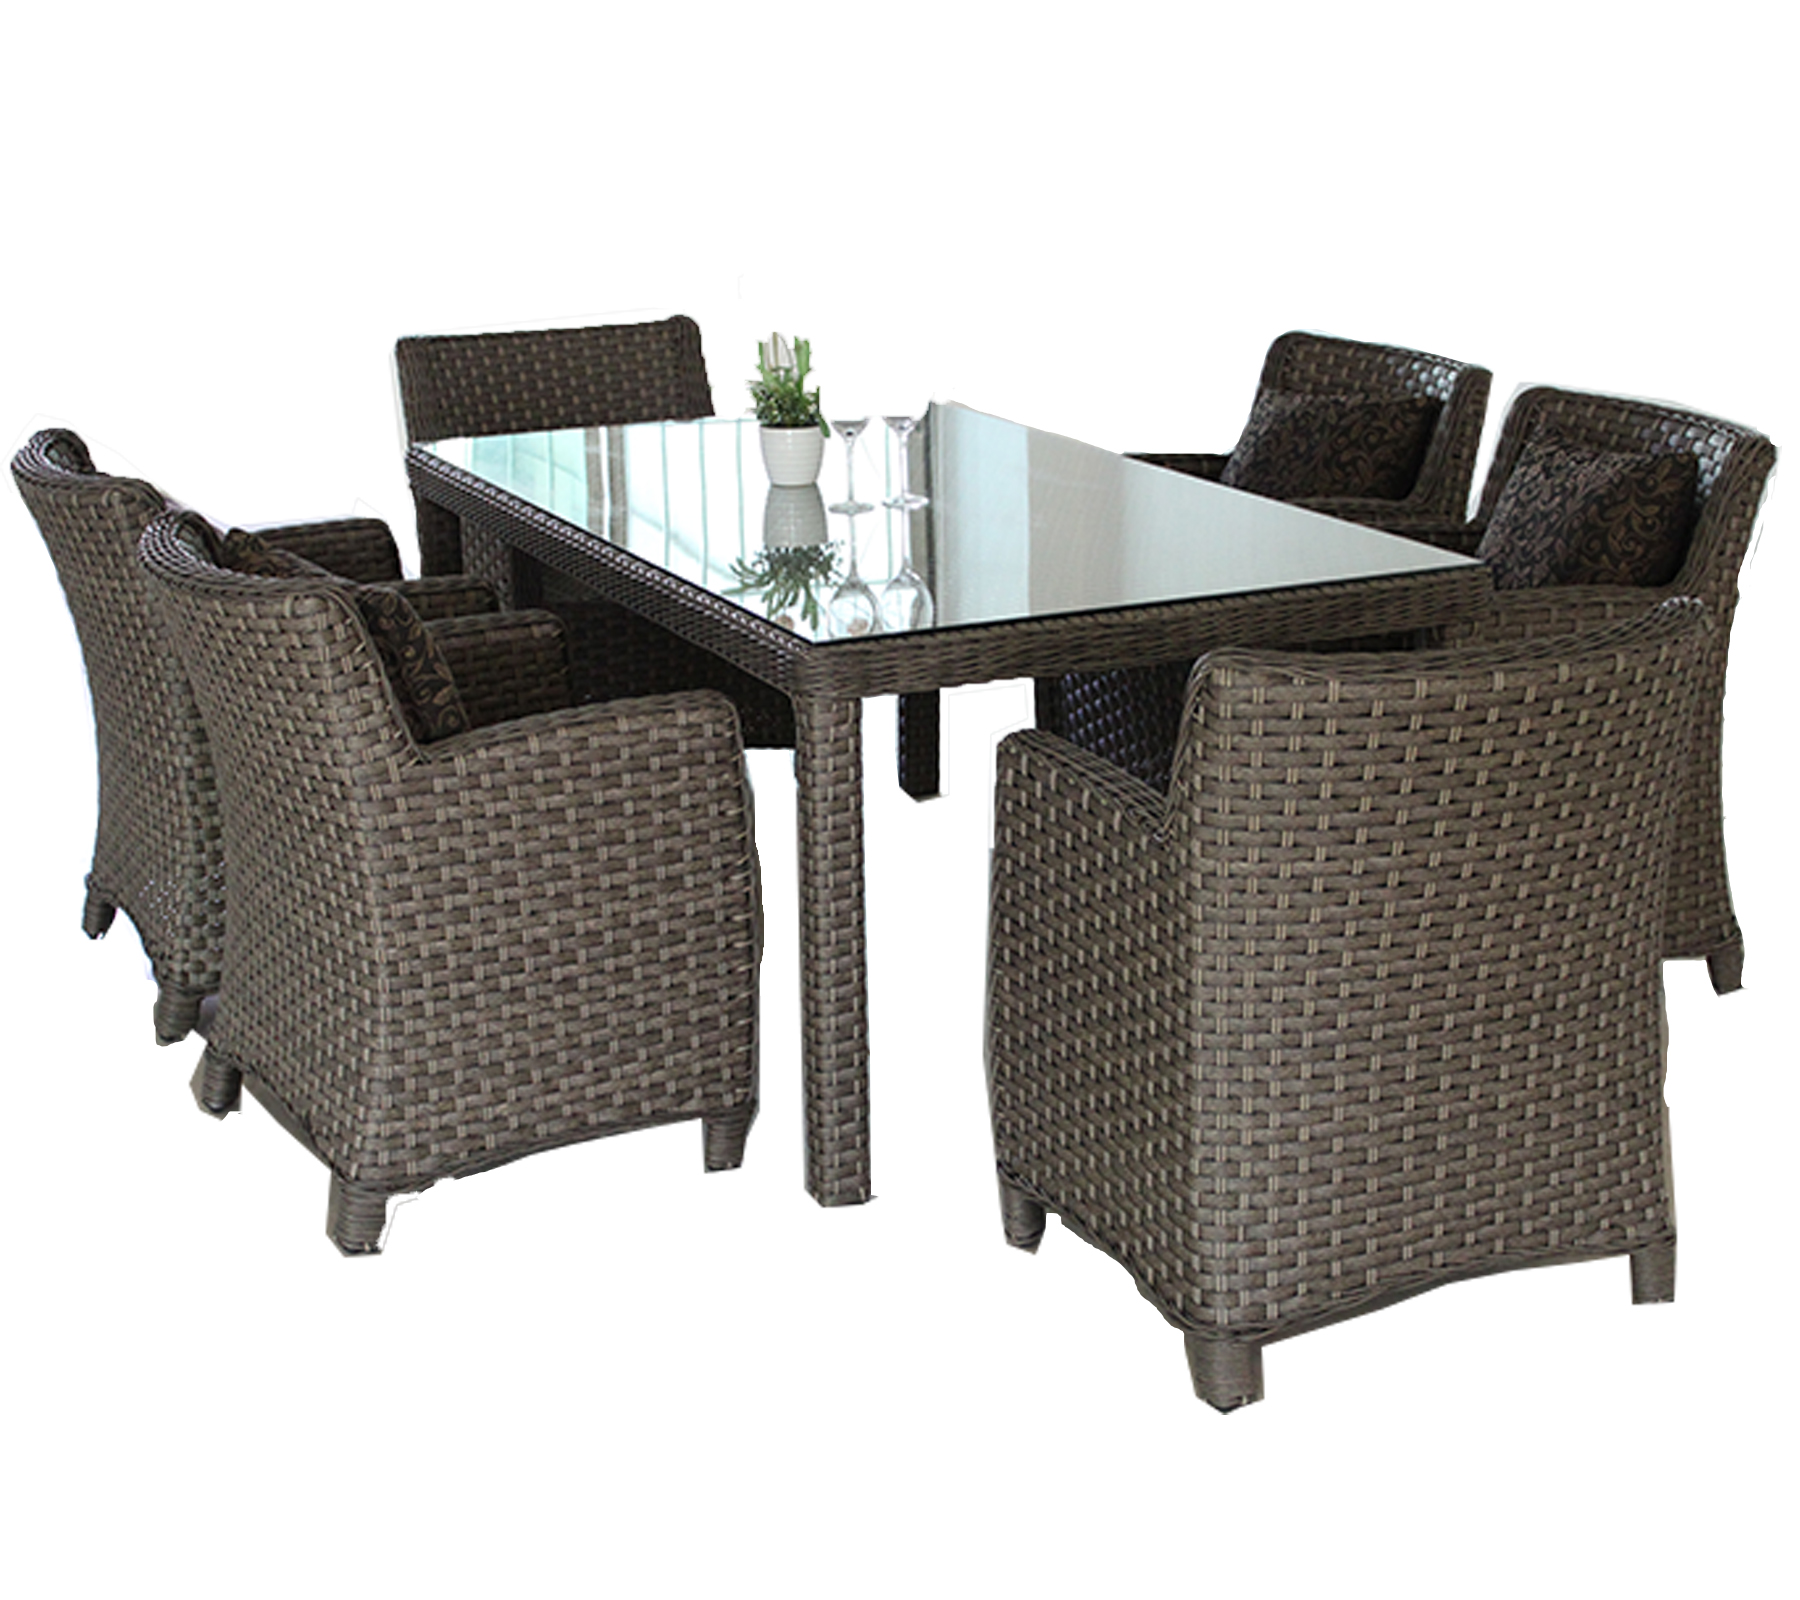 Best Deals Patio Garden Furniture Wicker Table And Chairs ...